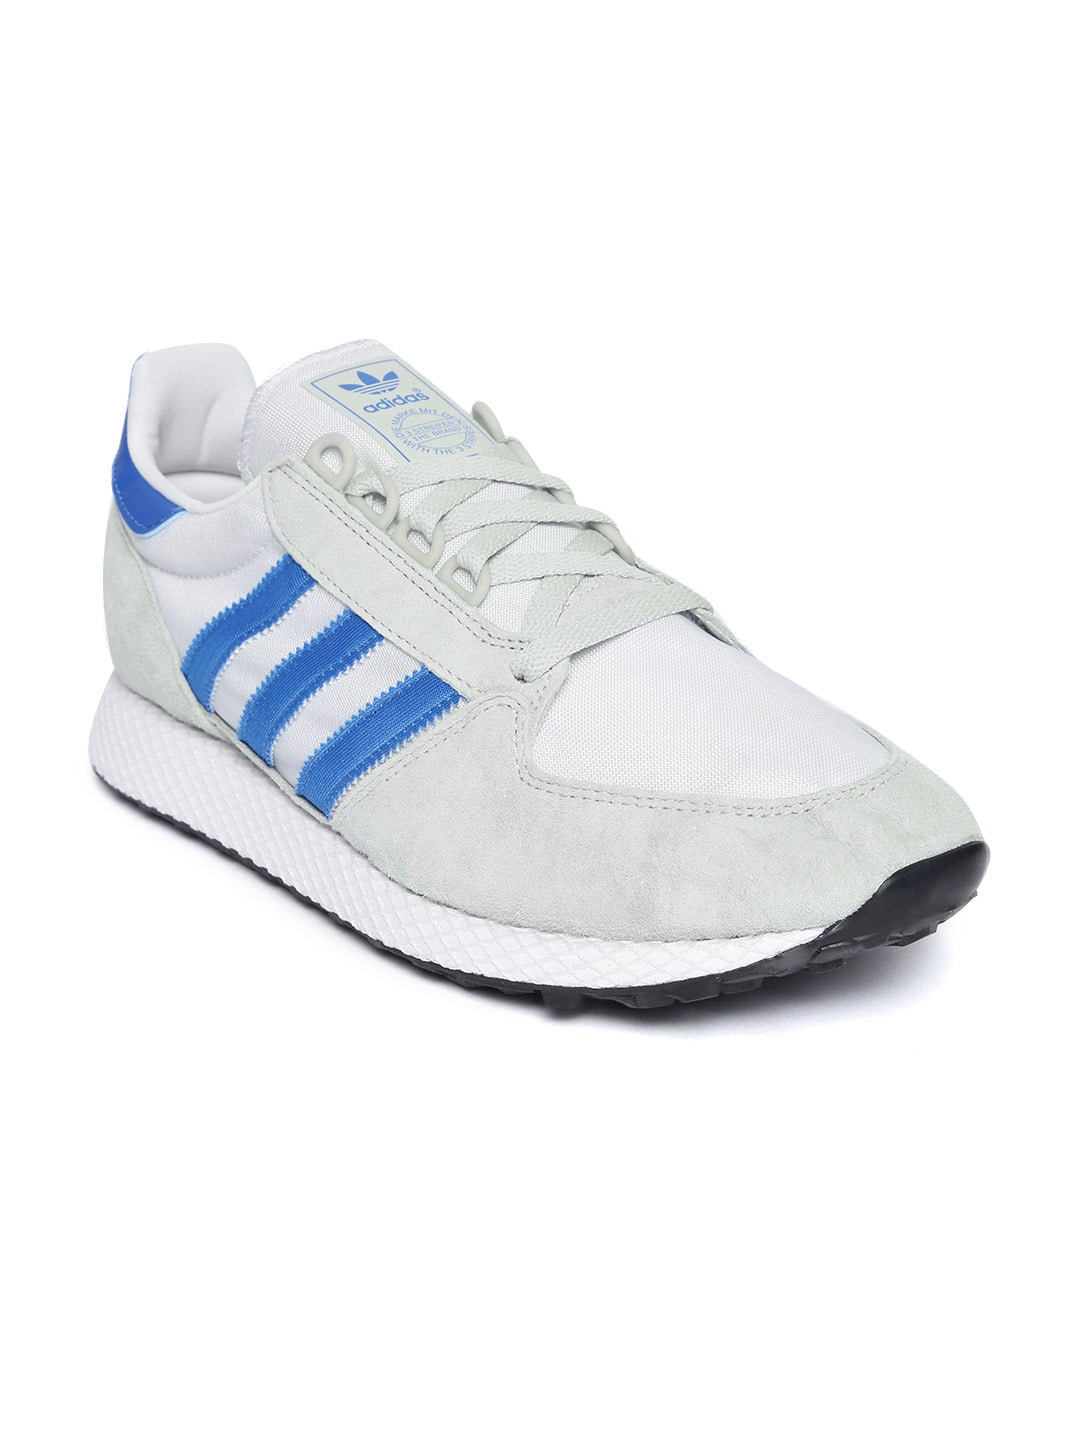 5a24b74d4b34f4 Nubuck Shoes - Buy Nubuck Shoes online in India